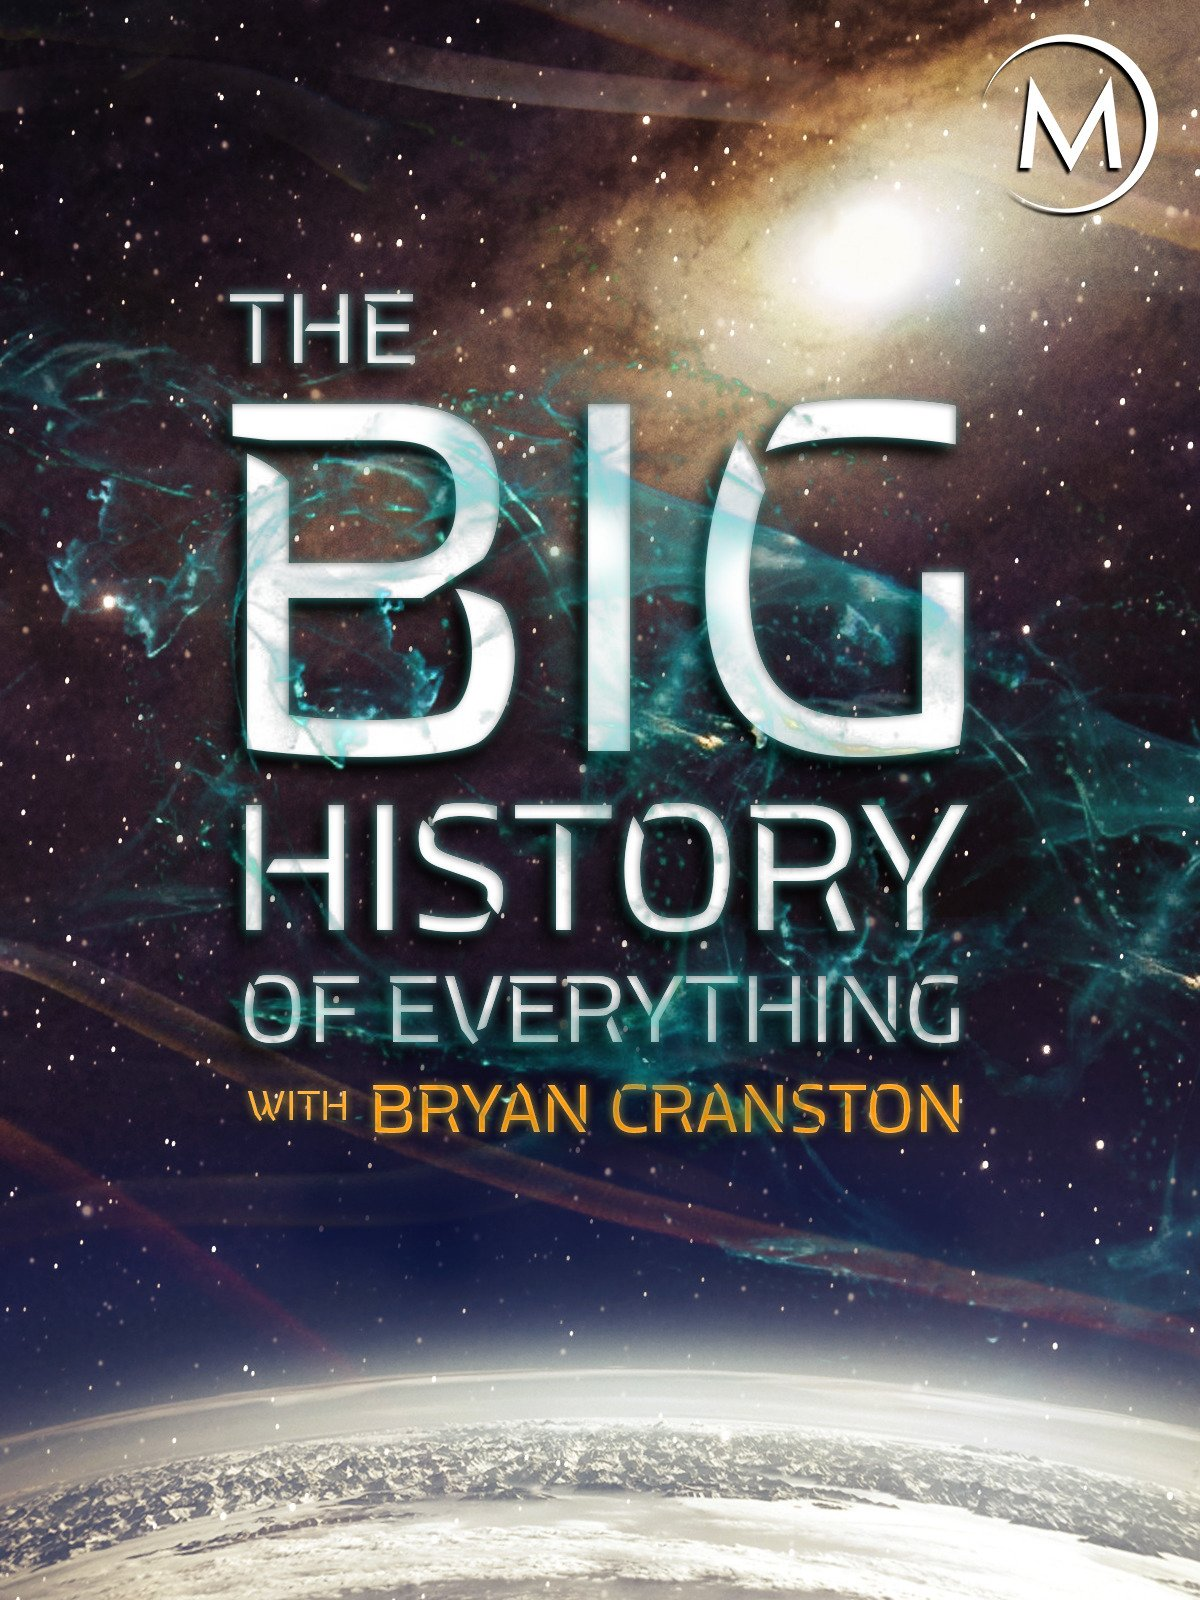 The Big History of Everything with Bryan Cranston